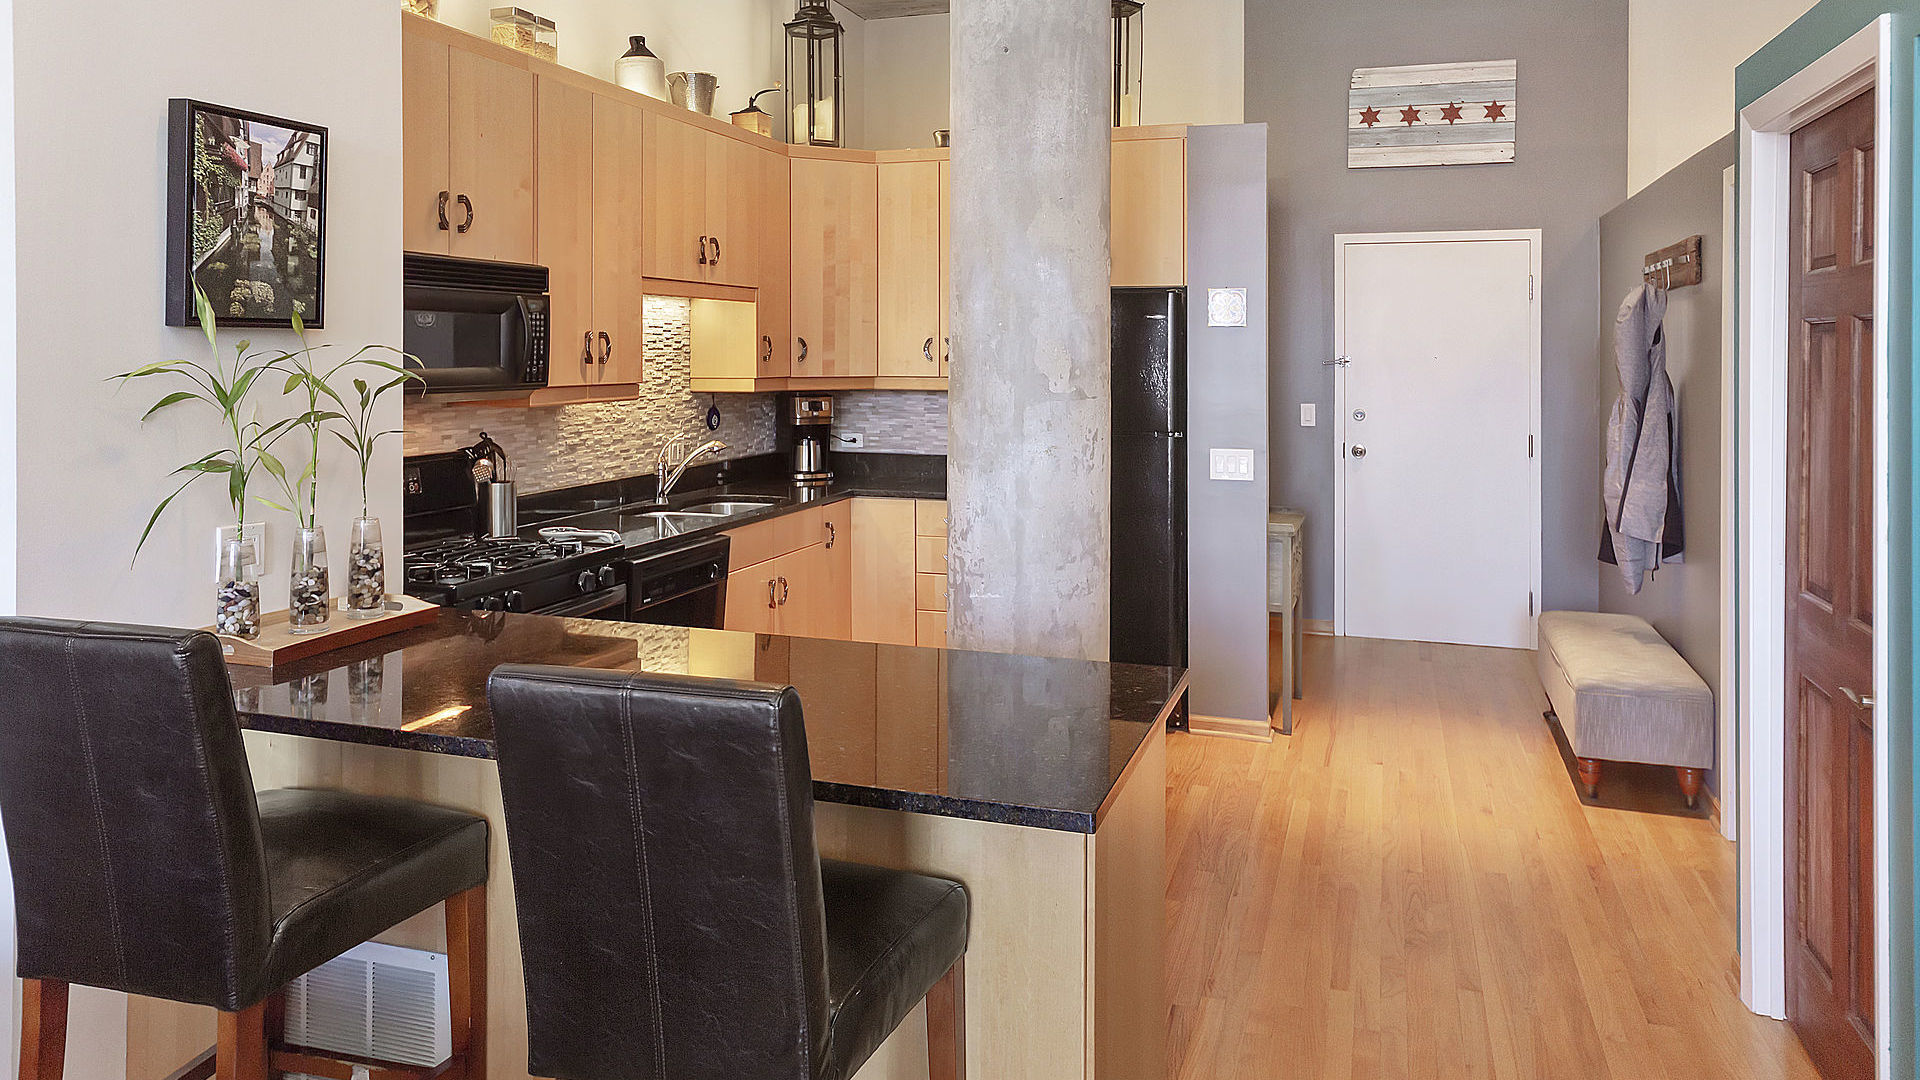 Chicago Lofts For Sale: Concrete, Brick, Timber, Industrial